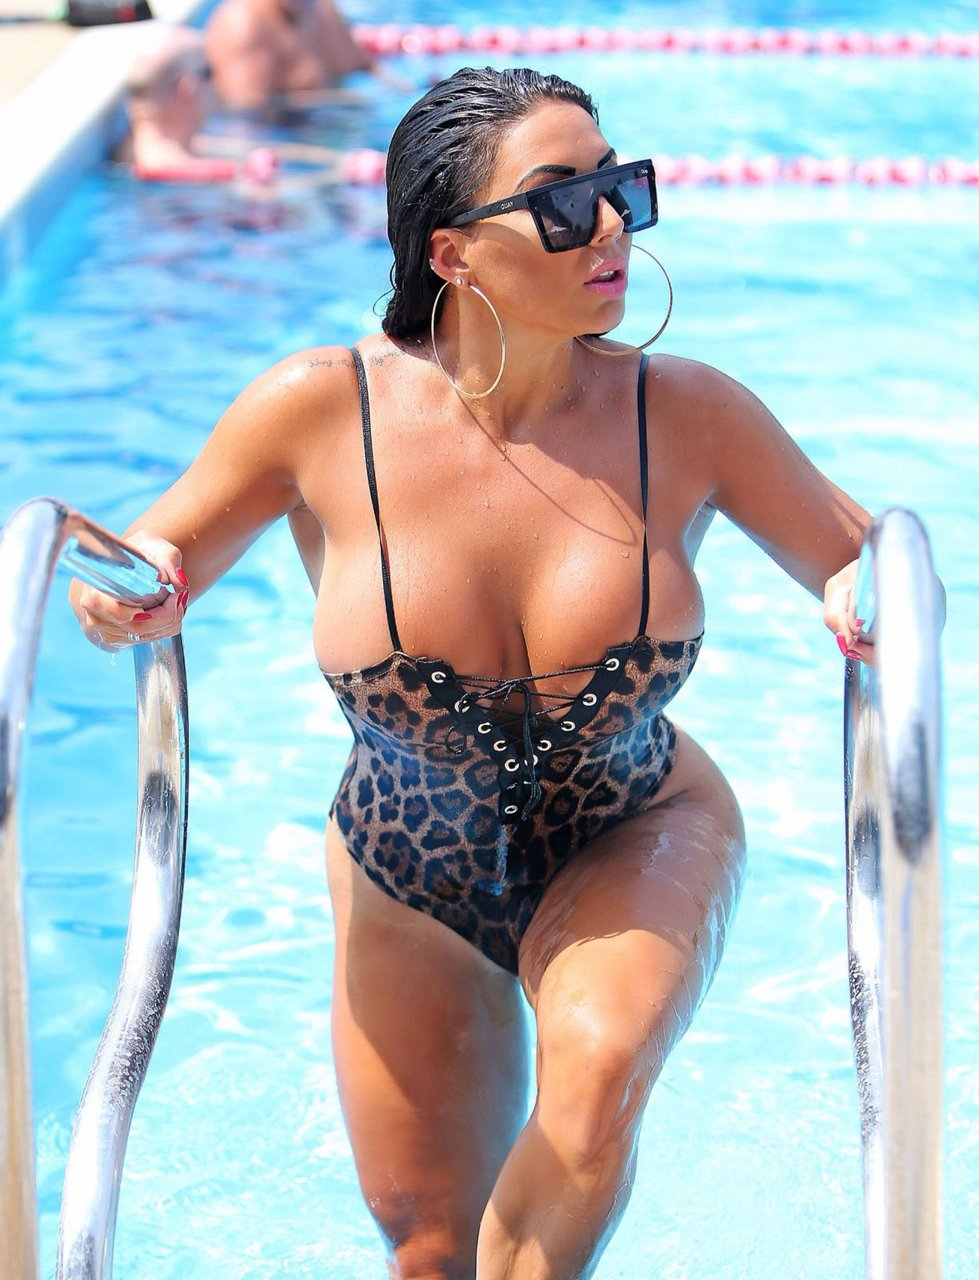 Grace J Teal was spotted in leopard print swimming costume at David Lloyd Centre in Southend, Essex, 07/13/2018.